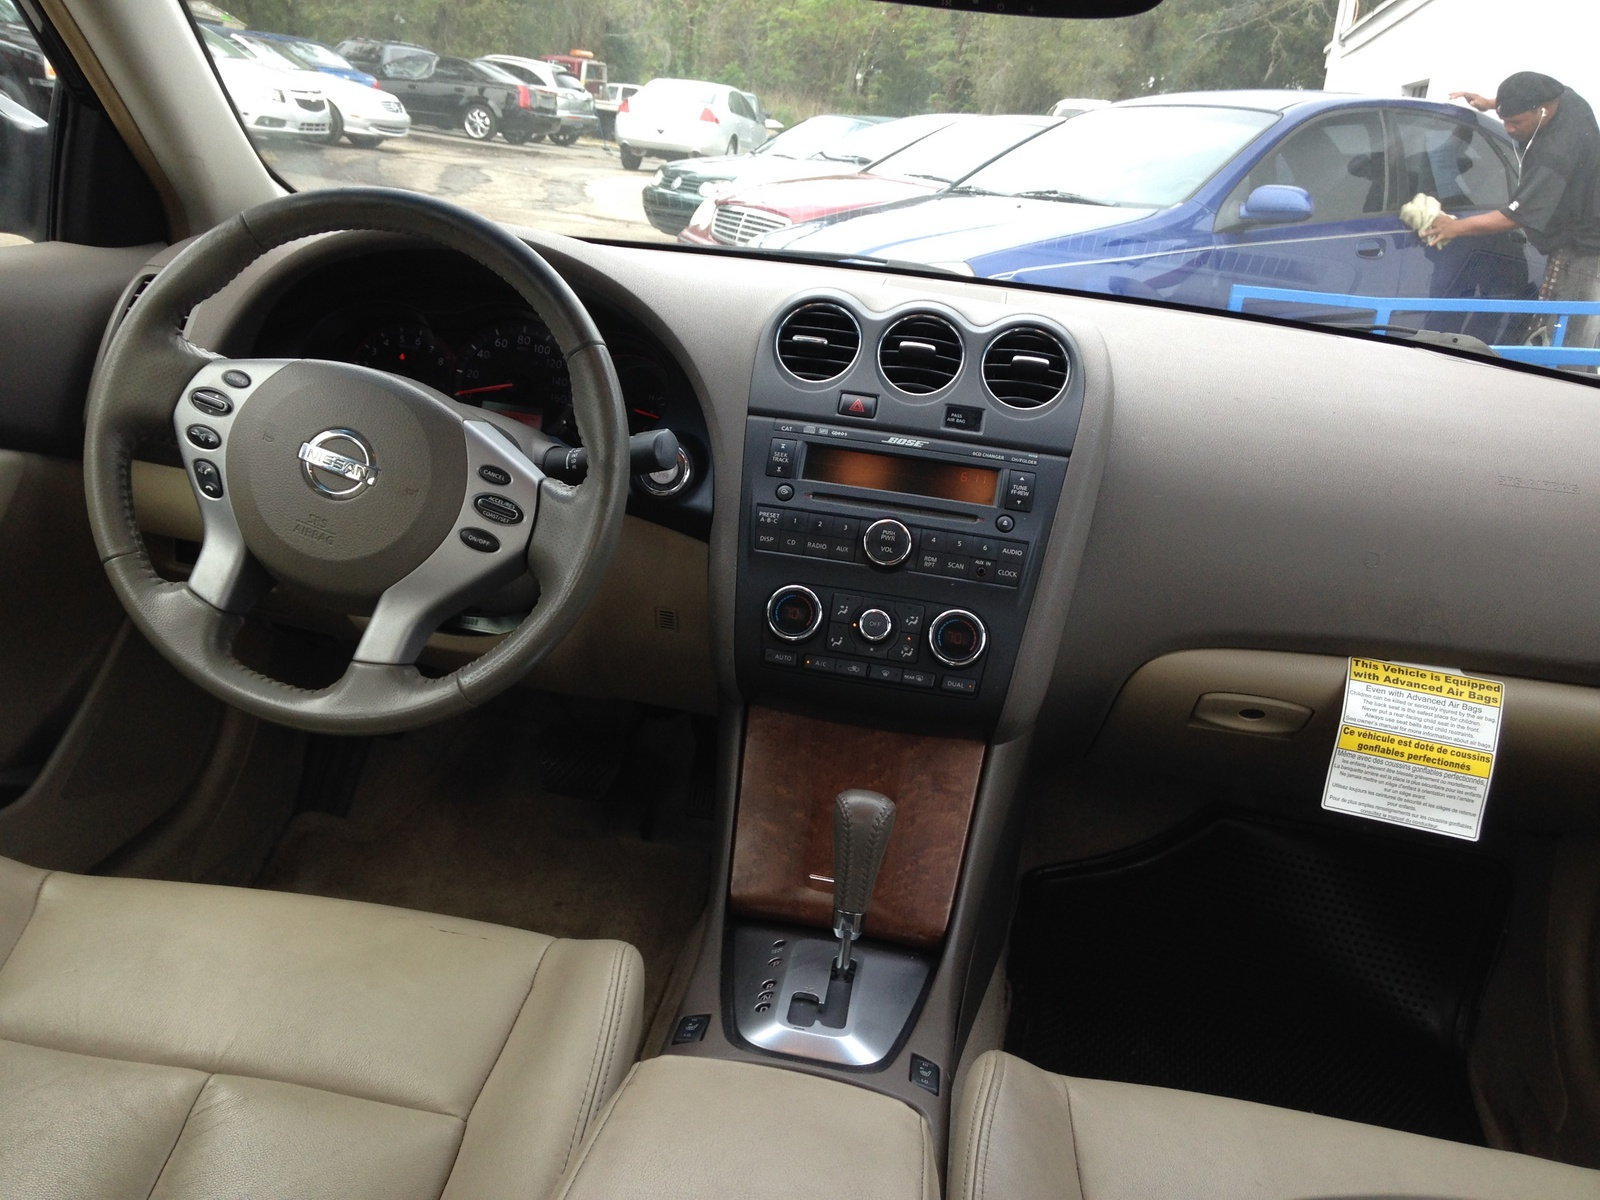 2007 nissan altima 2 5 s interior pictures to pin on pinterest pinsdaddy. Black Bedroom Furniture Sets. Home Design Ideas